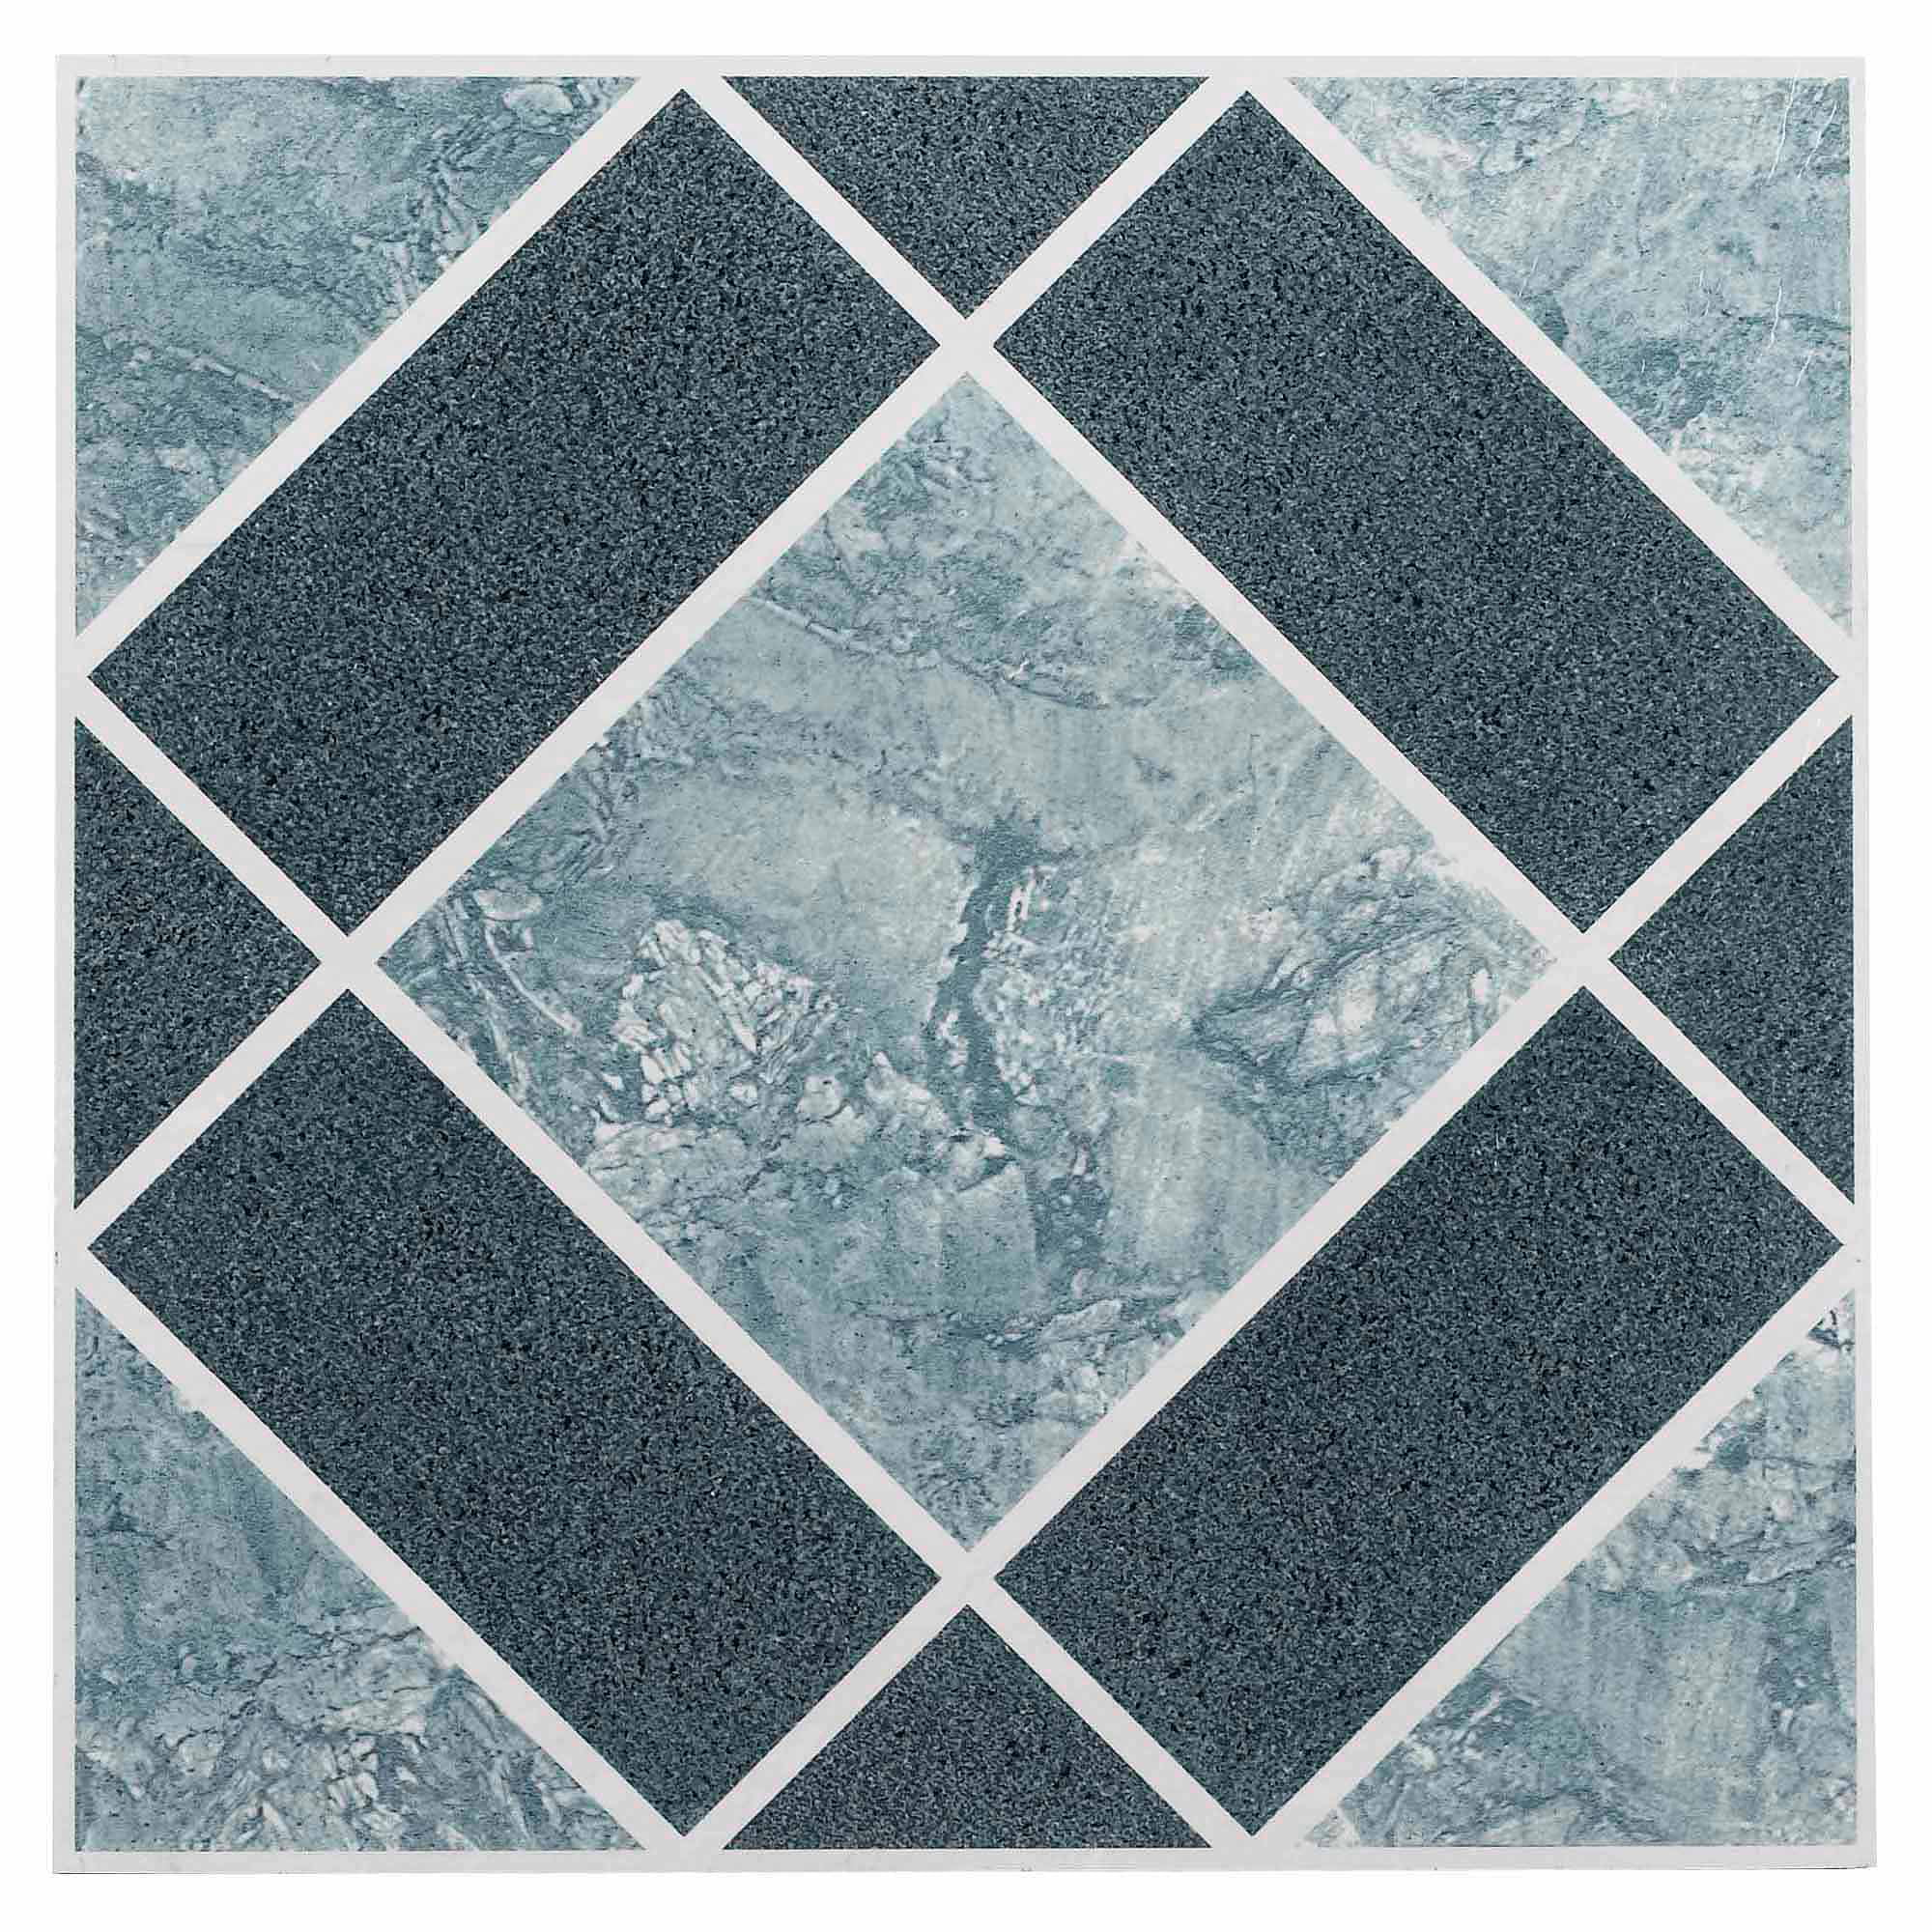 Vinyl Floor Tile product 69267 1org Nexus Light Dark Blue Diamond Pattern 12x12 Self Adhesive Vinyl Floor Tile 20 Tiles20 Sqft Walmartcom